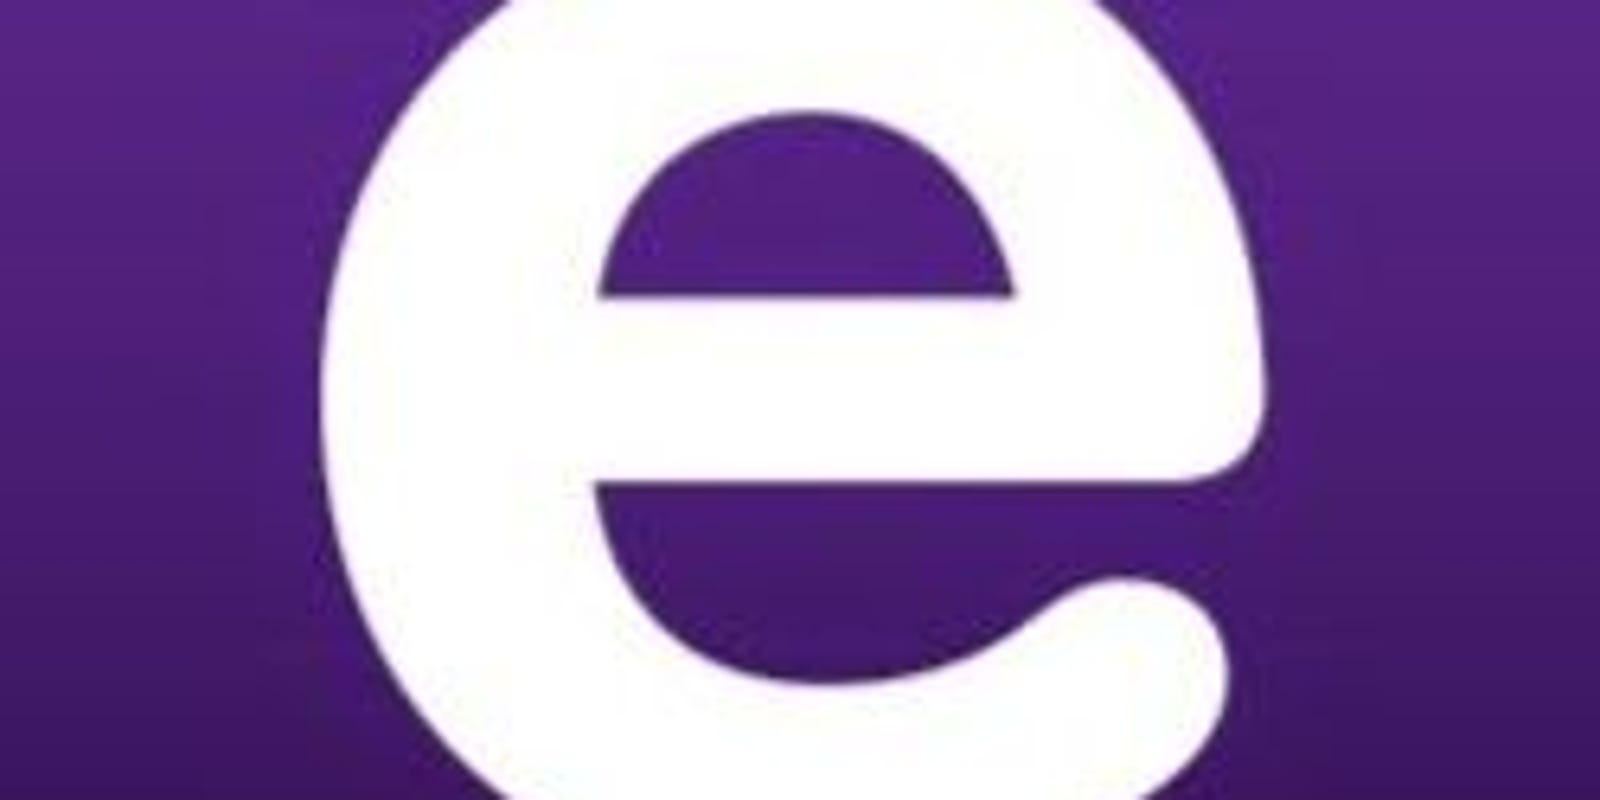 Esurance lays off about 30 in Sioux Falls.